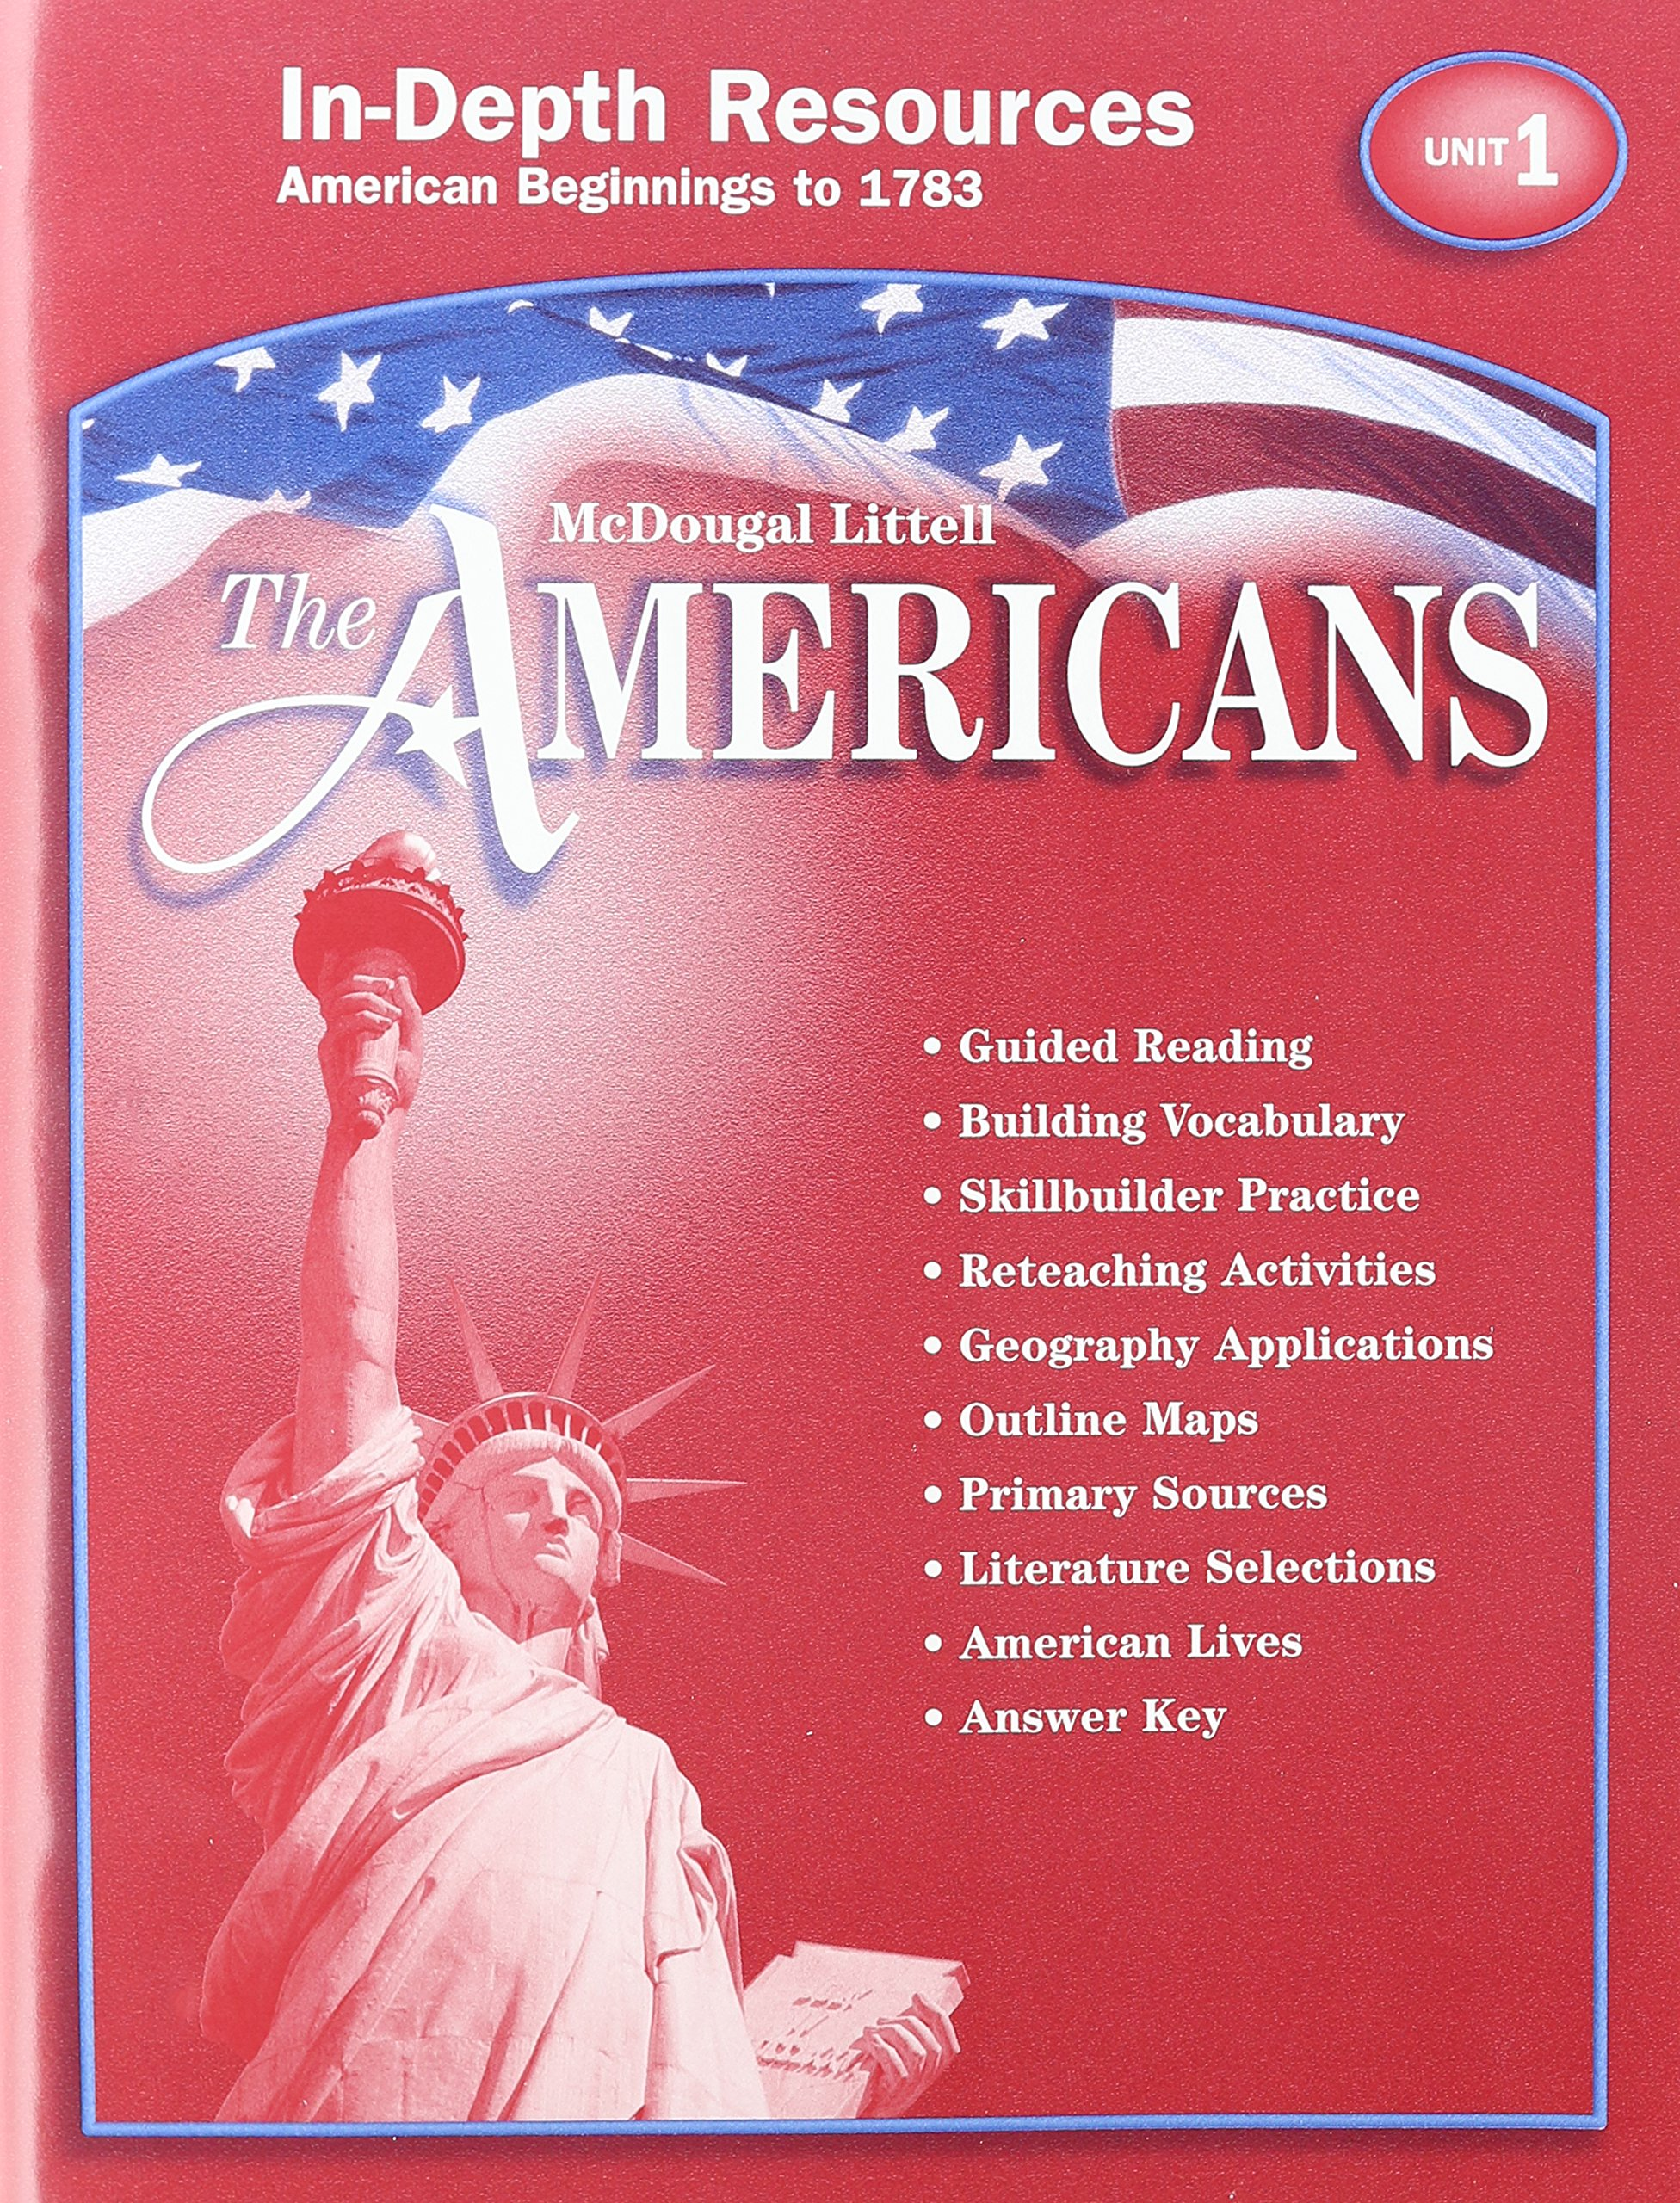 The Americans In-Depth Resources Unit 1 American Beginnings to 1783: unk.:  9780618175154: Amazon.com: Books